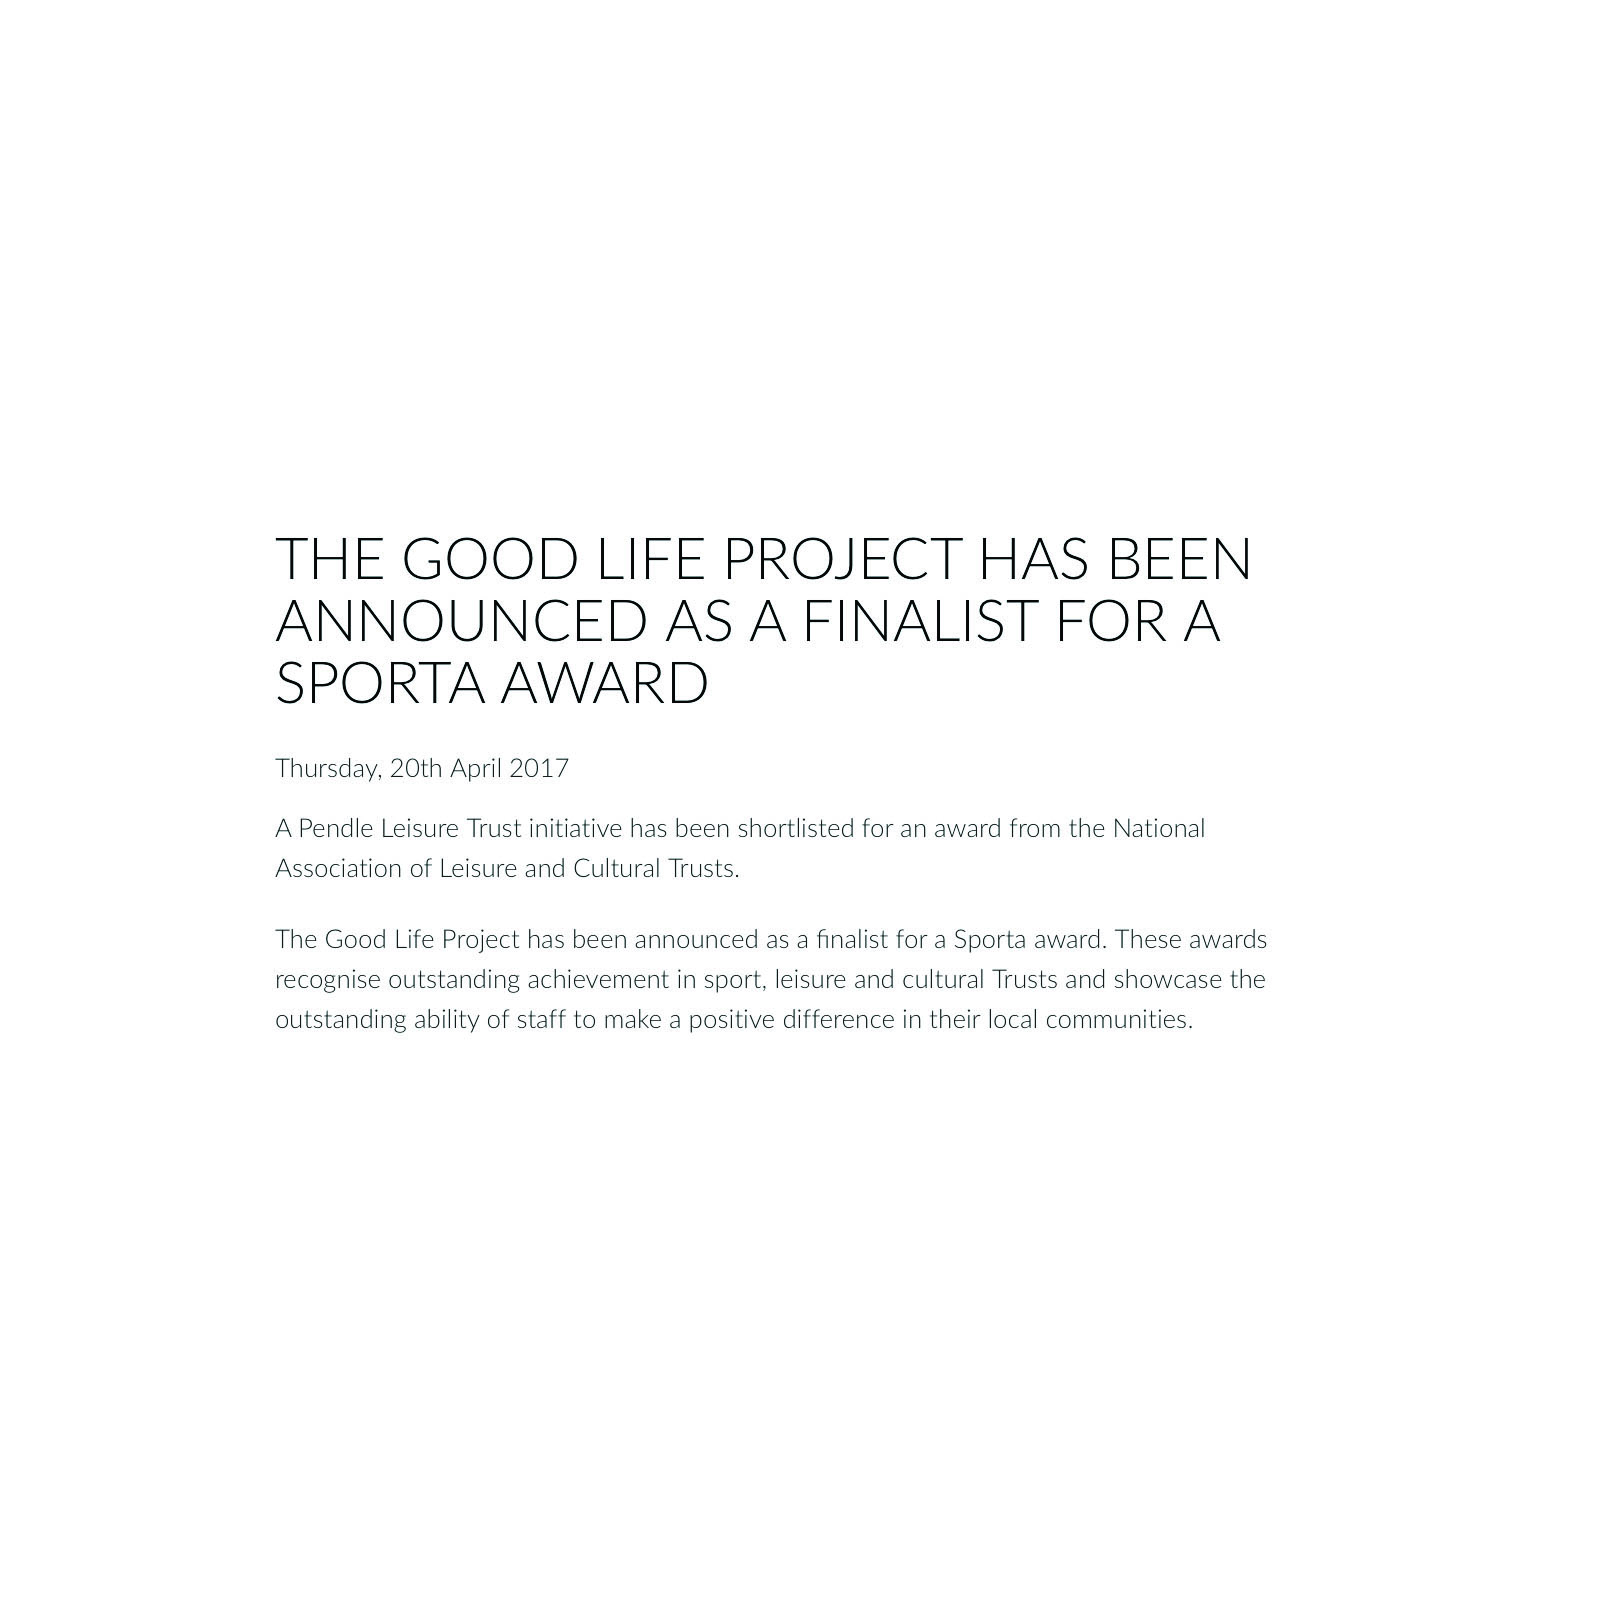 The Good Life Project was runner up for the recognition of outstanding achievement in sport, leisure and cultural Trusts and showcase the outstanding ability of staff to make a positive difference in their local communities.